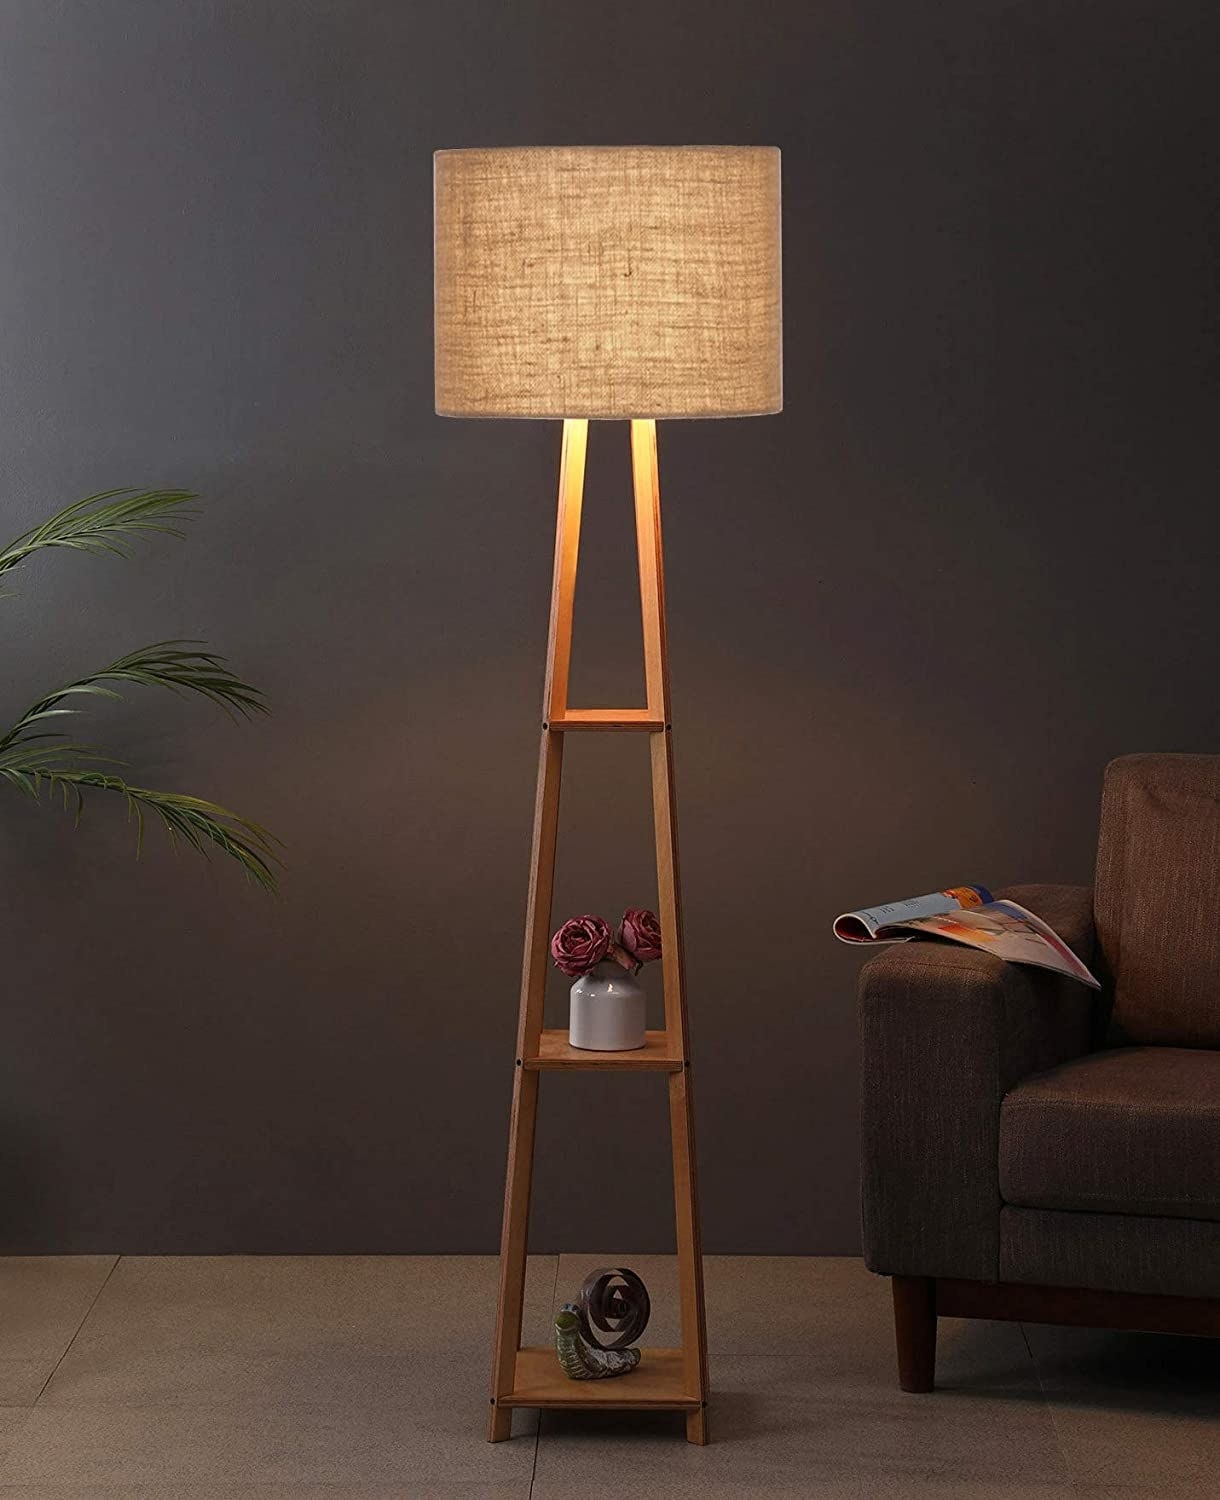 A 3-tired lamp with plants and showpieces on its shelves.